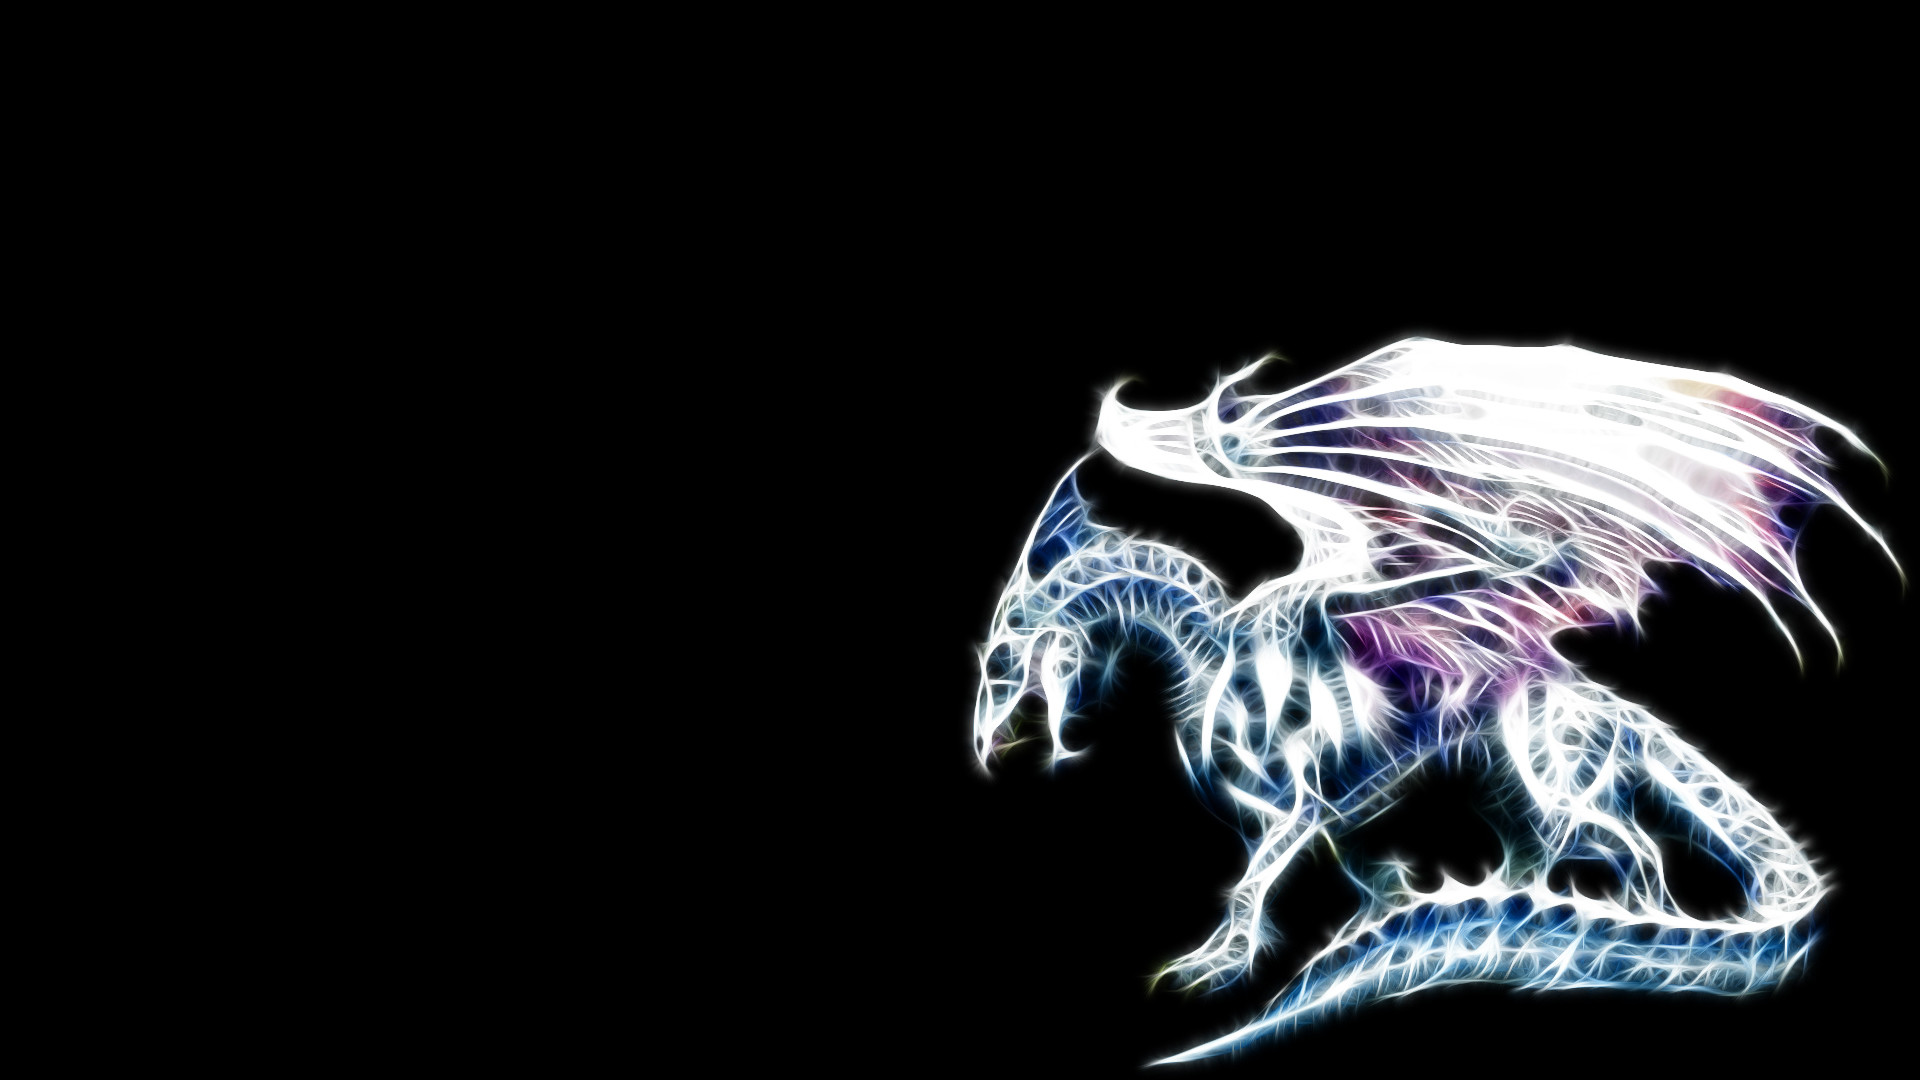 Wallpapers Collection «Dragon Wallpapers»